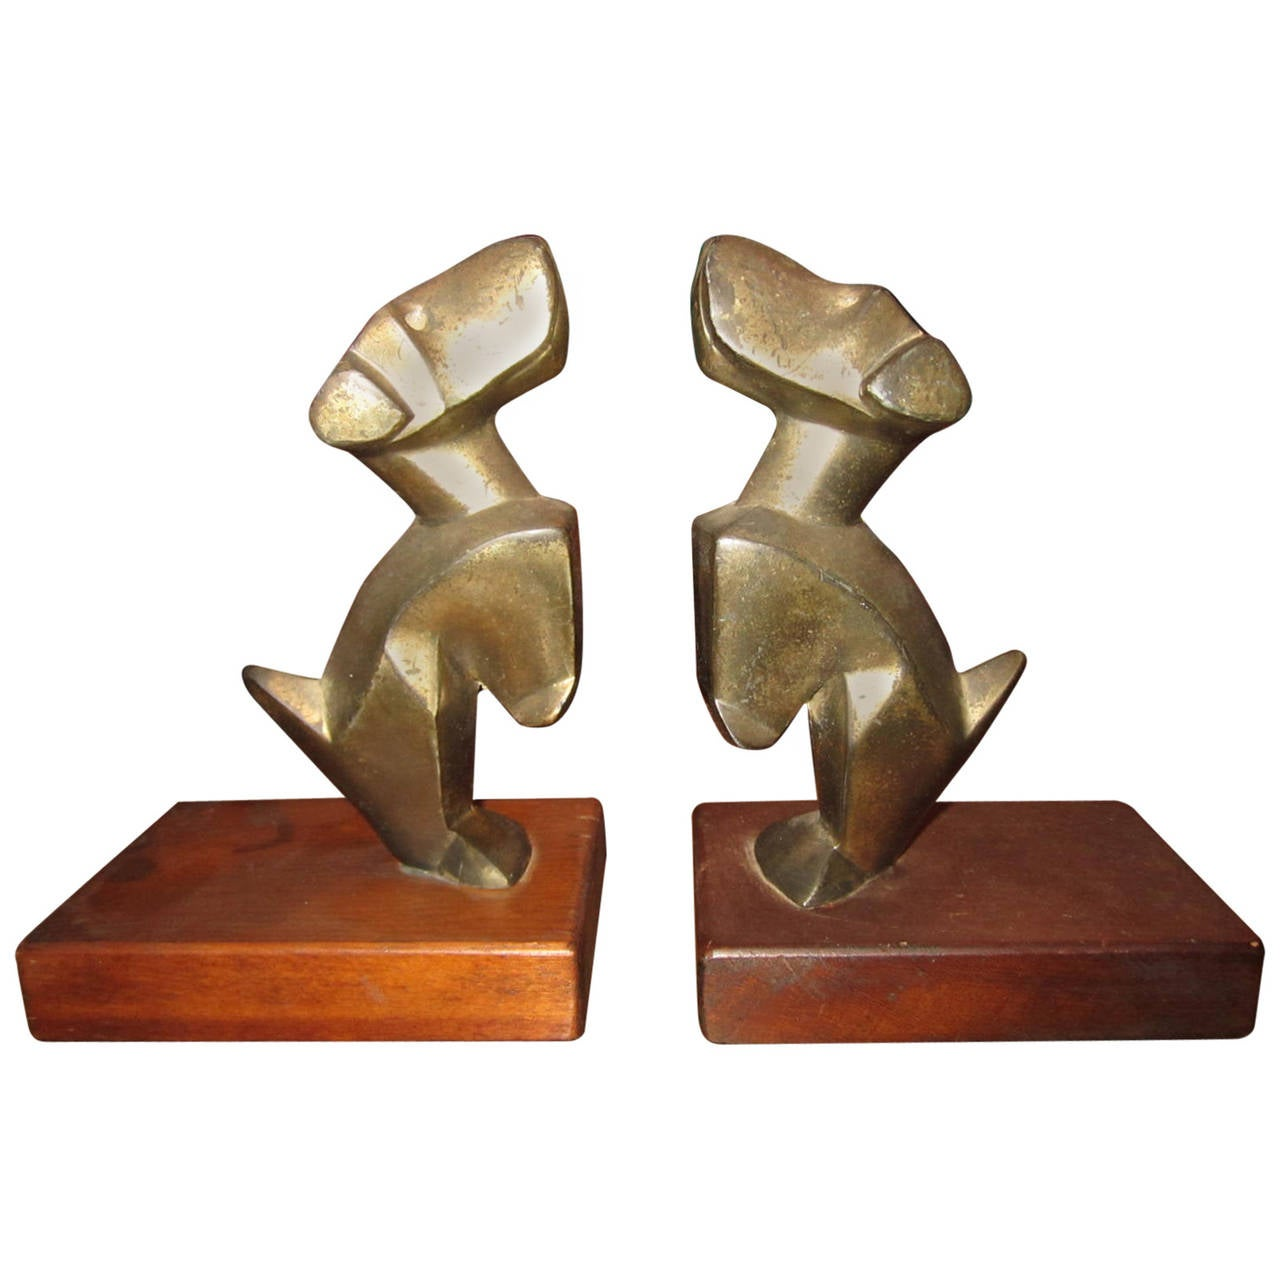 Excellent Pair of E. Nikolsky Bronze Terrior Bookends Mid-Century Modern